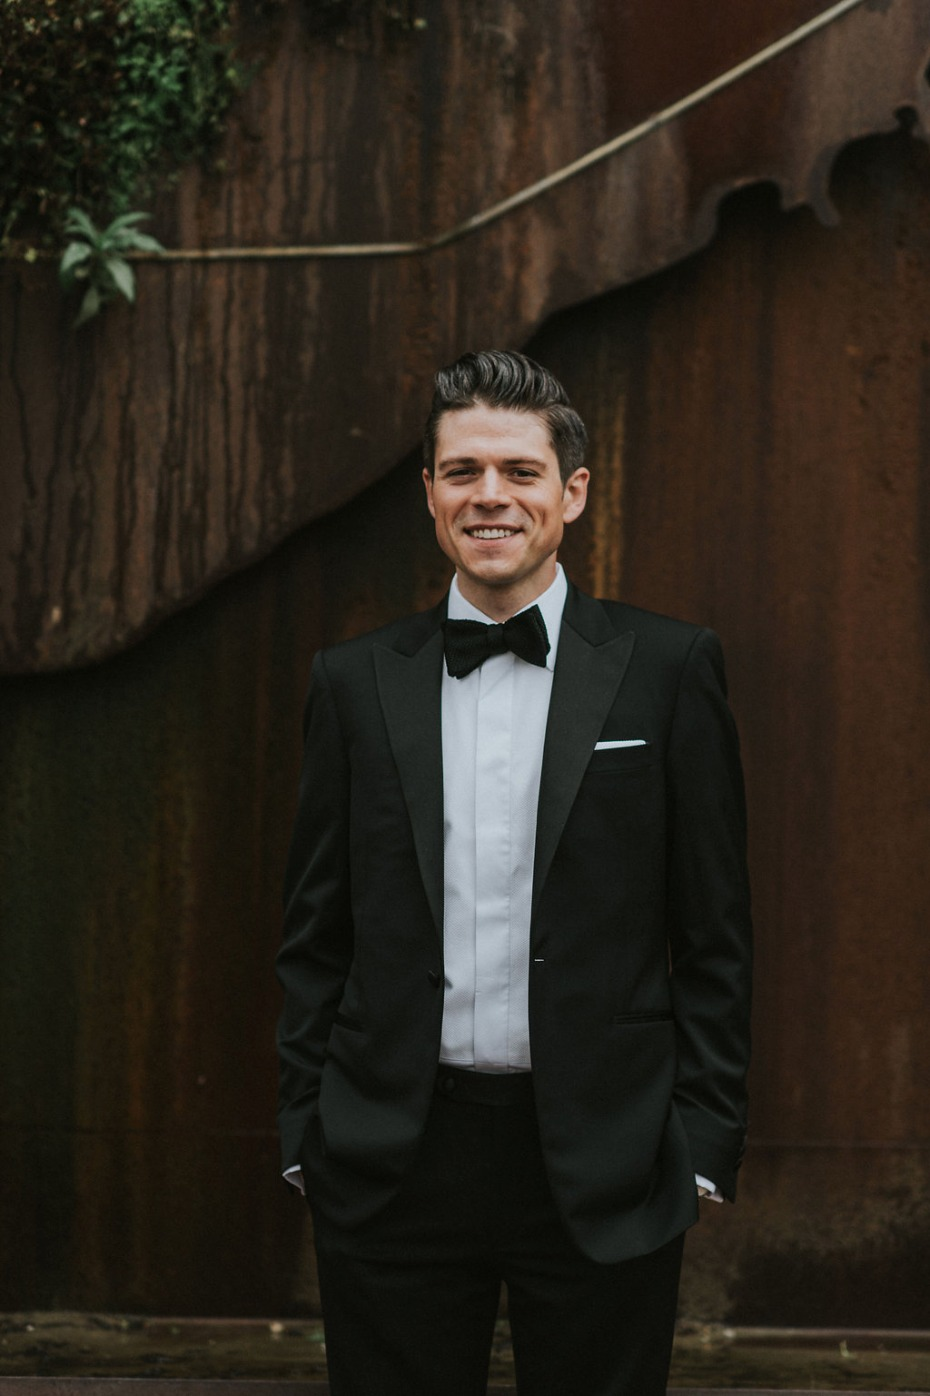 groom in black tie style